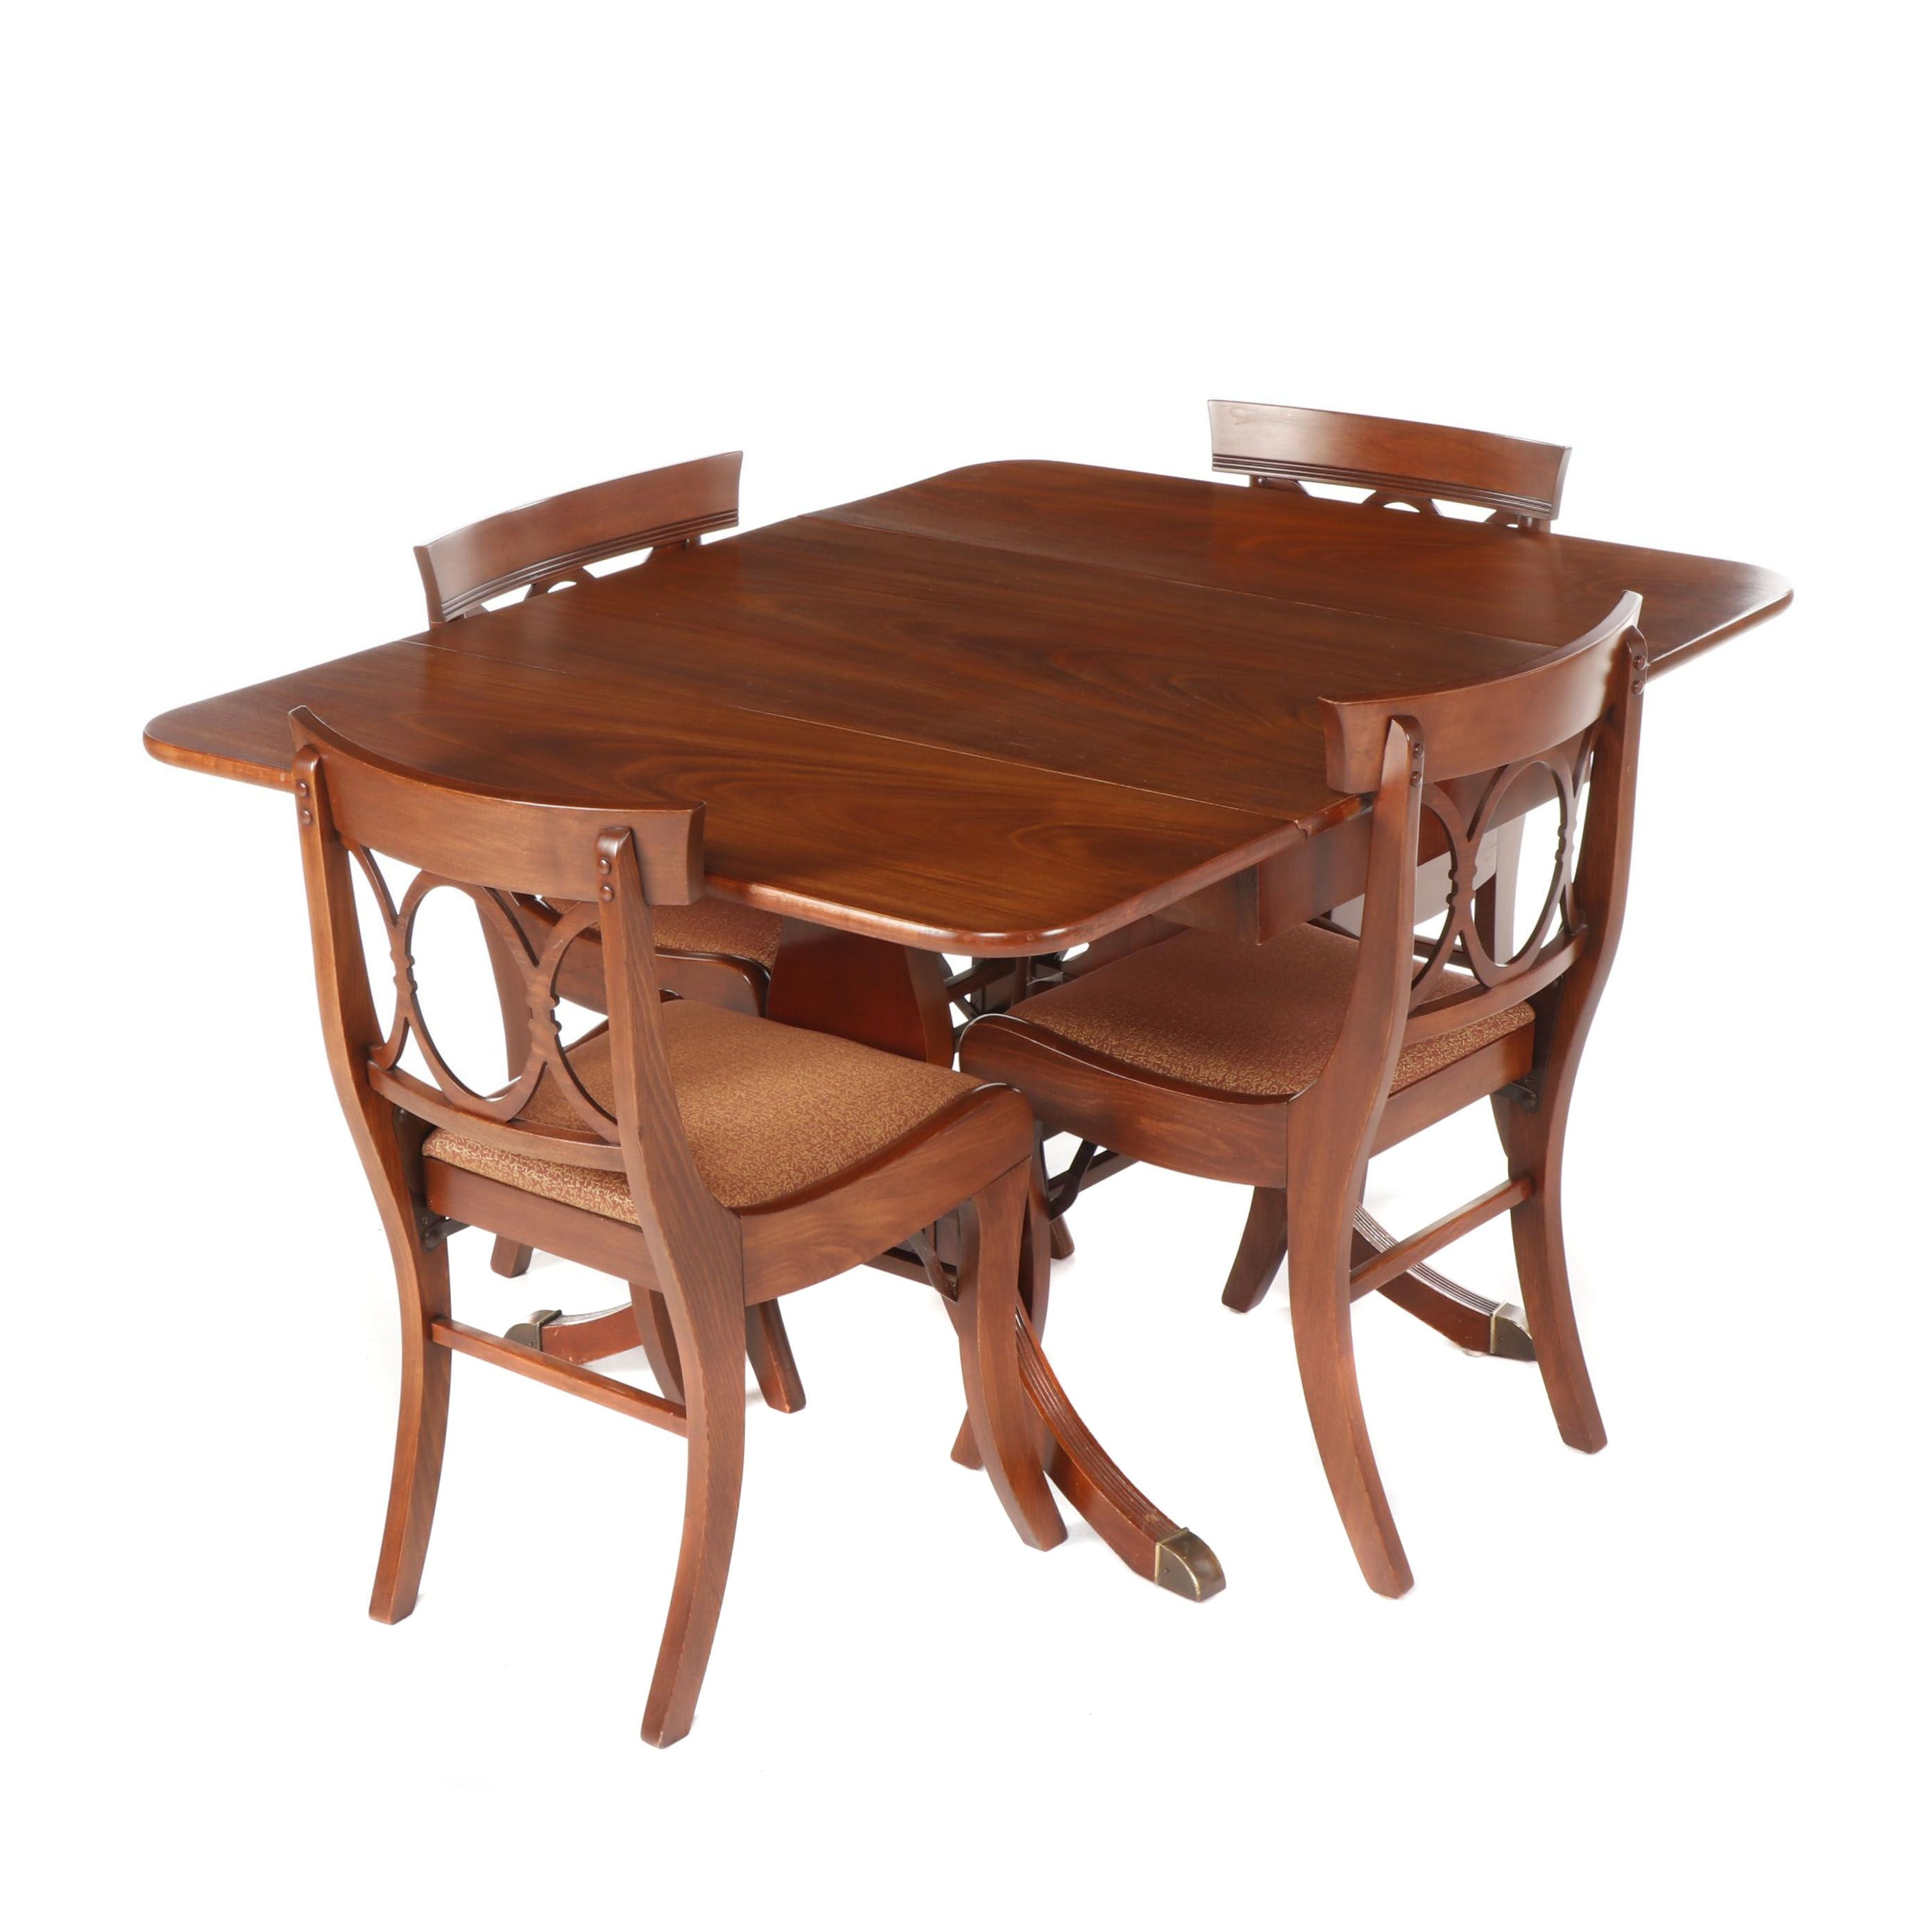 Duncan Phyfe Style Dining Table with Tell City Mahogany Folding Chairs, 20th C.